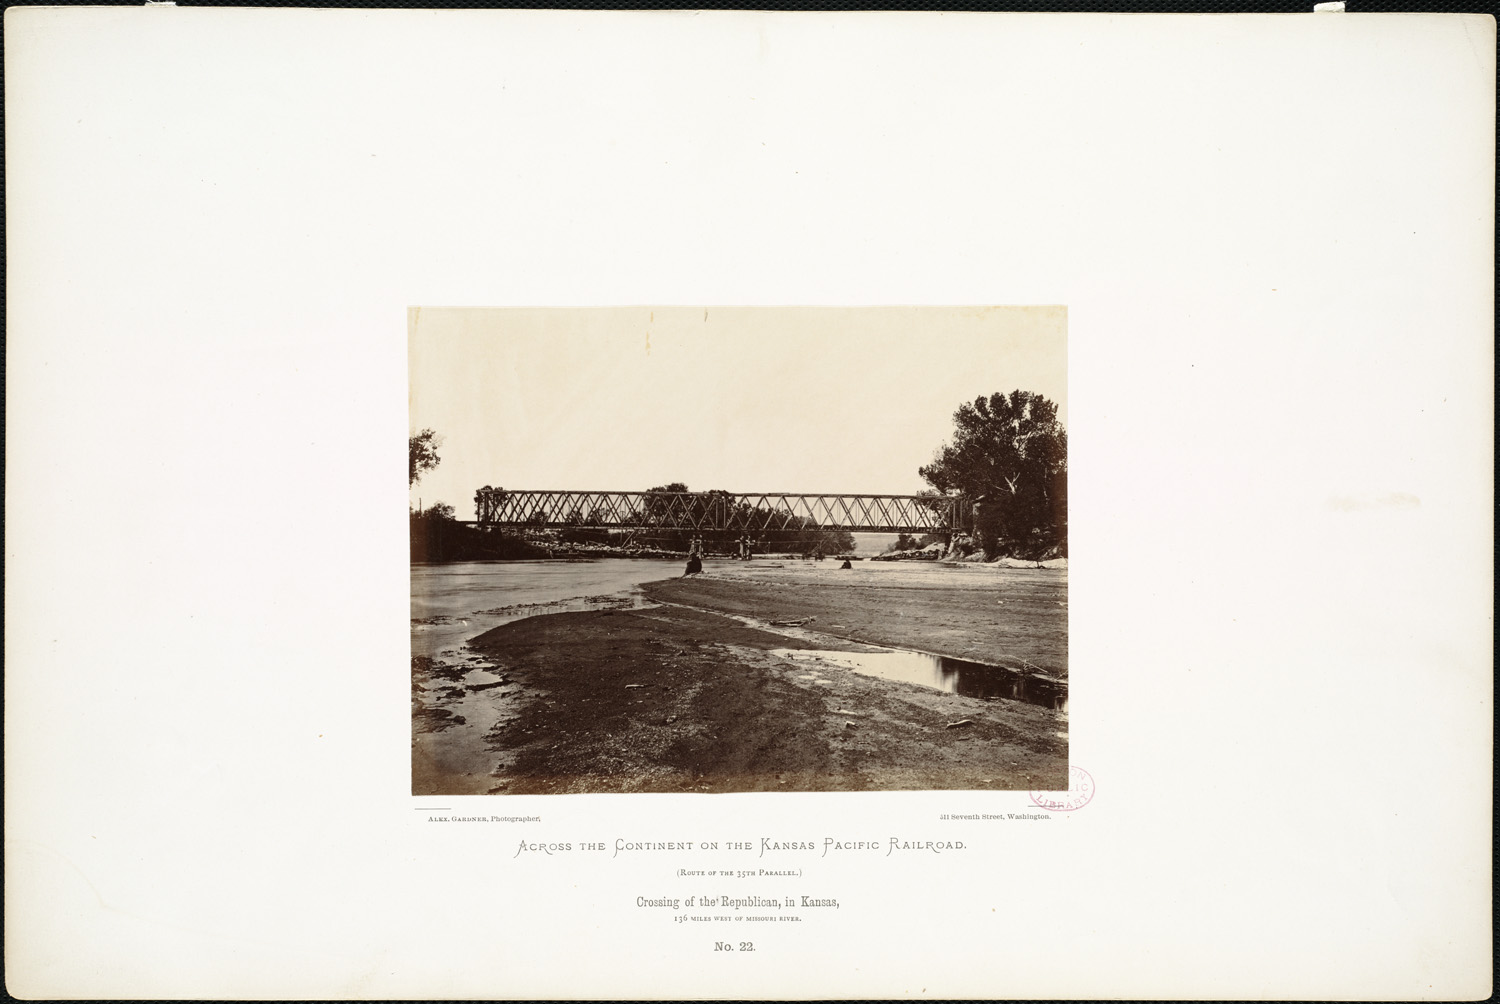 The Kansas Pacific Railway bridge across the Republican River and behind that, a pontoon bridge. [ Alexander Gardner (photographer), 1867][14] The present Union Pacific Railroad and Custer Road/Grant Road (previously U.S. Route 40) still bridge the Republican River at the same locations. Public access to the Kansas River National Water Trail is between the two bridges.